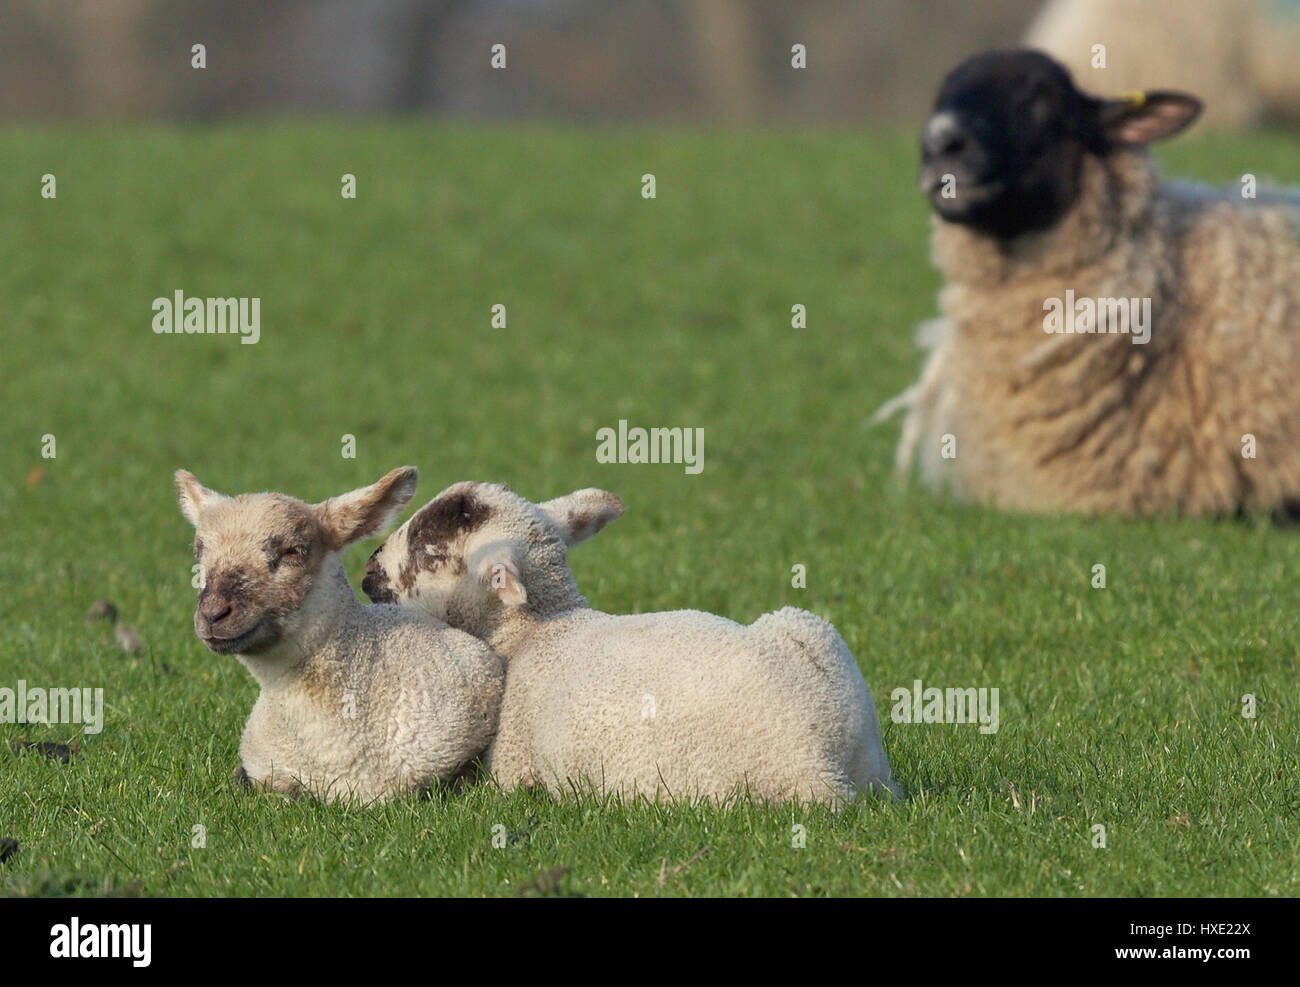 Pair of young lambs in a green field - Stock Image